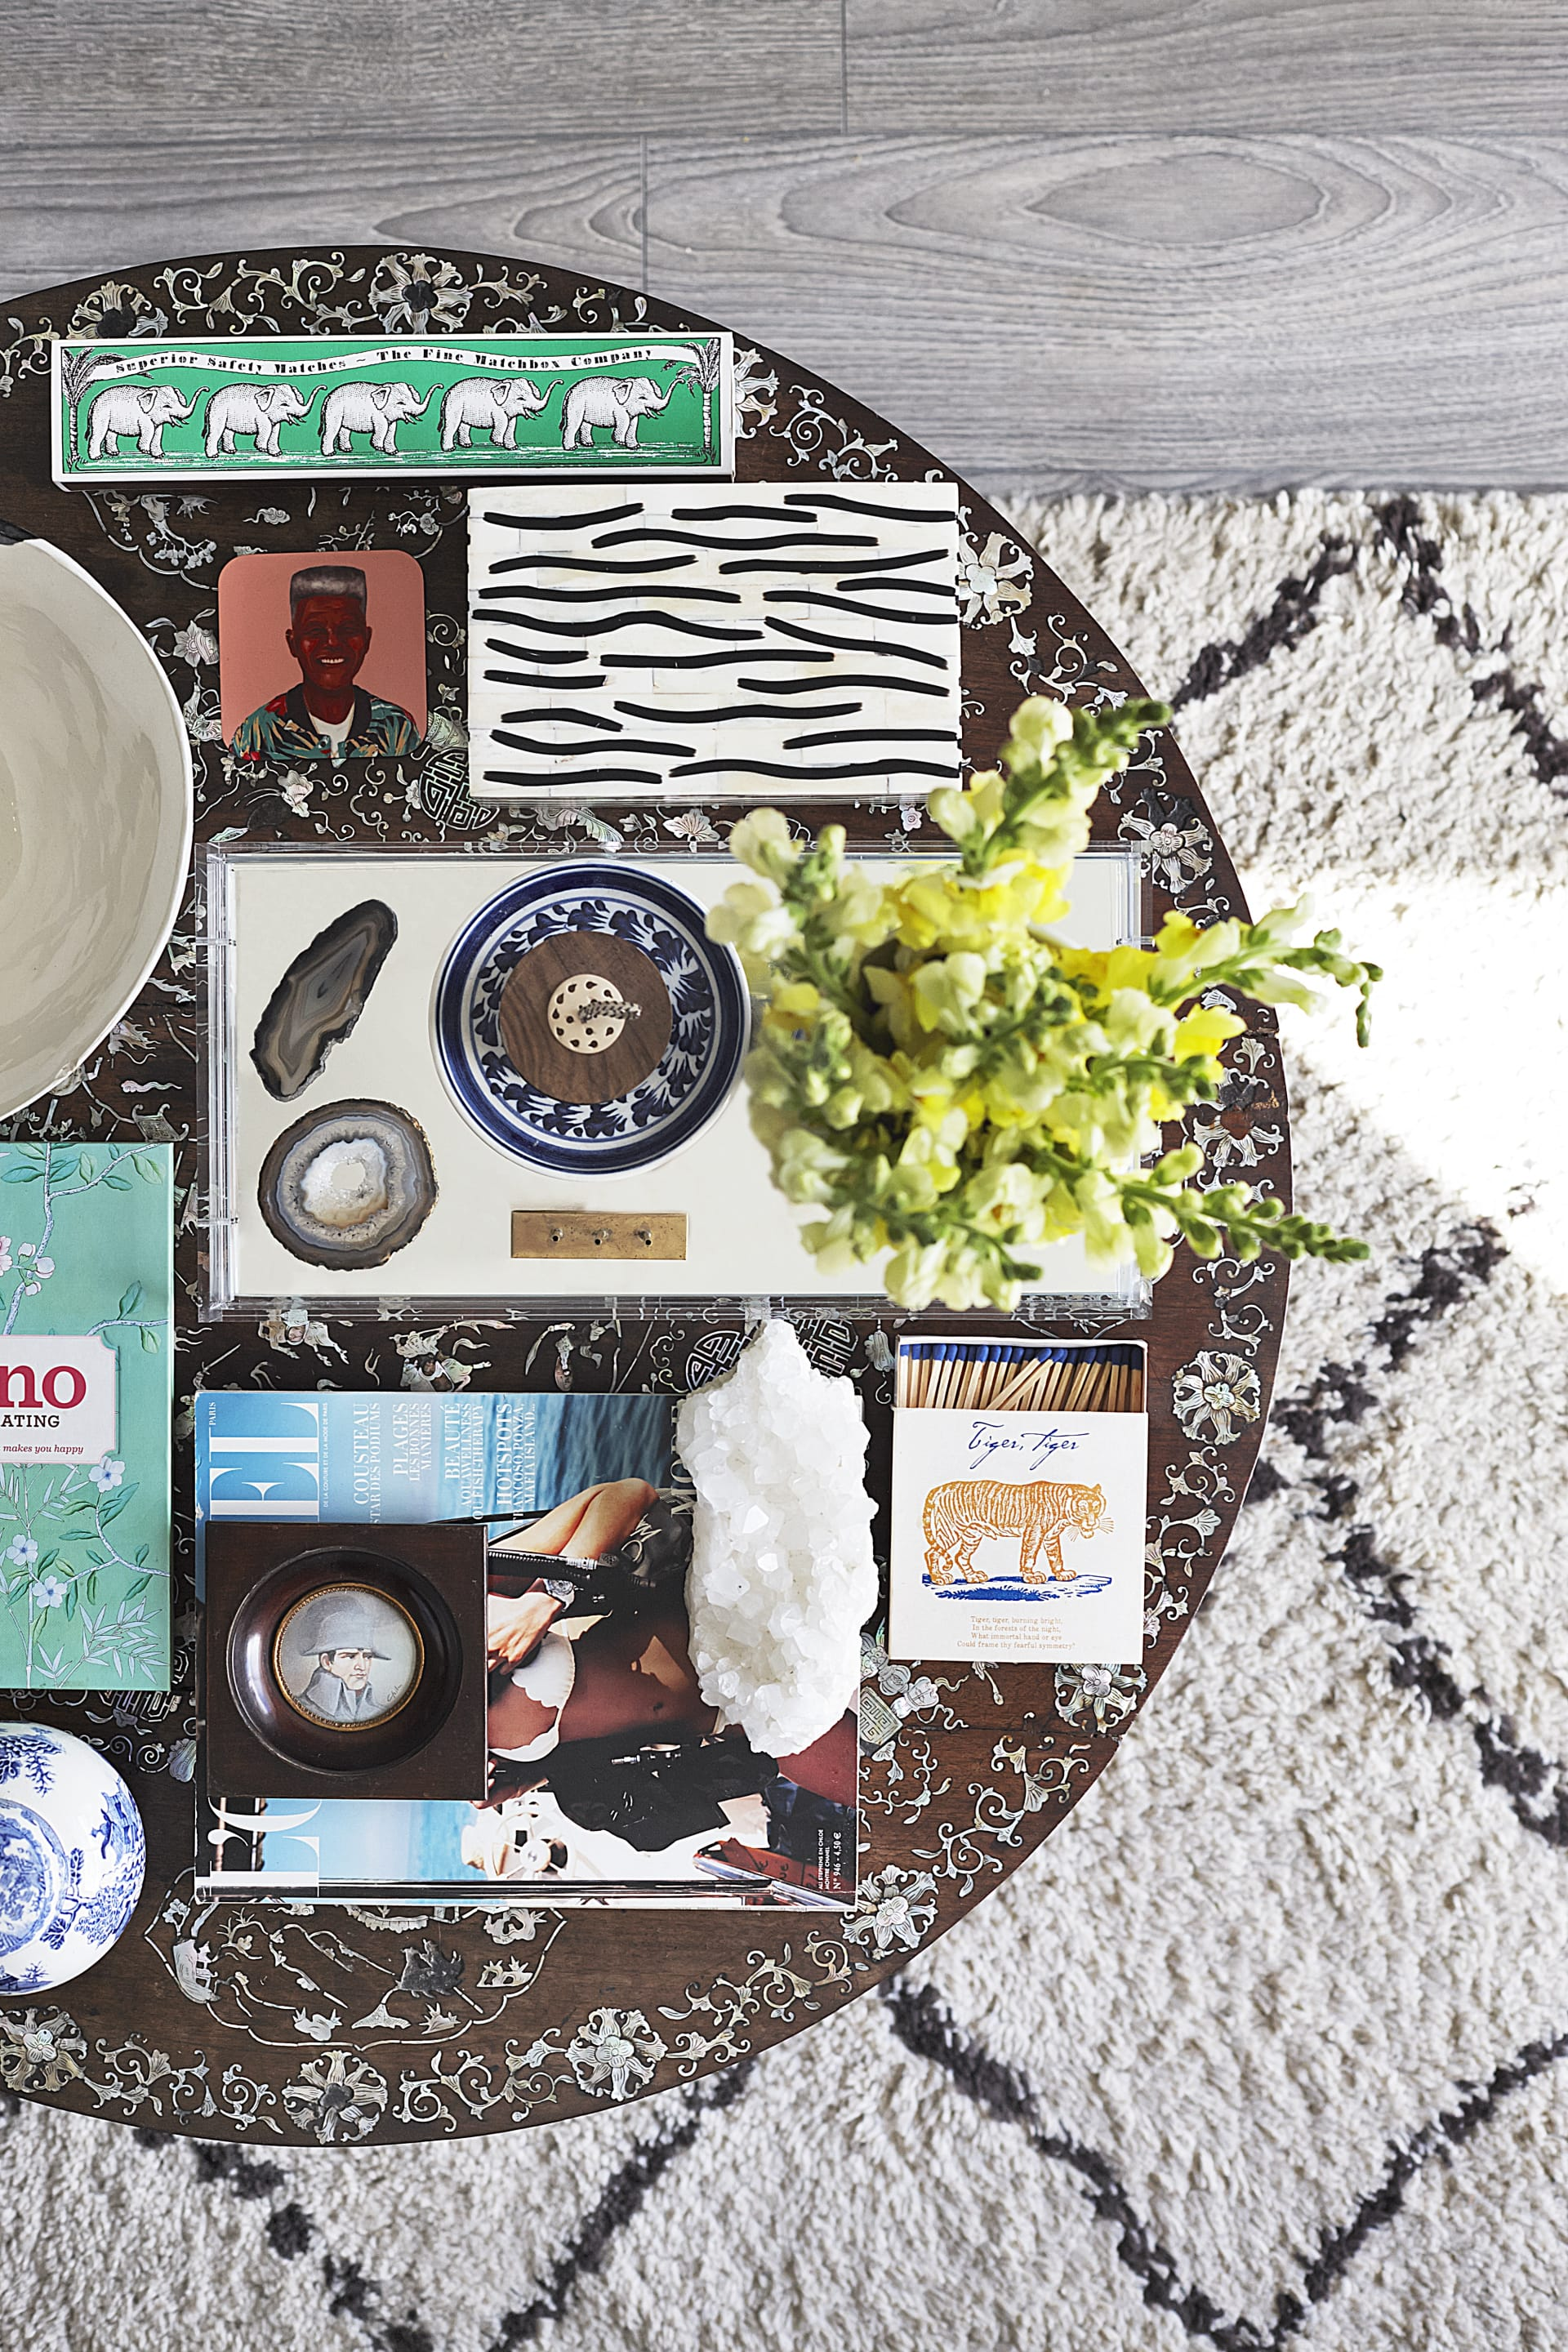 An inherited antique coffee table, handmade in Vietnam with mother of pearl inlay supports a visually impactful mix of beloved objects and collectibles. © Micky Hoyle